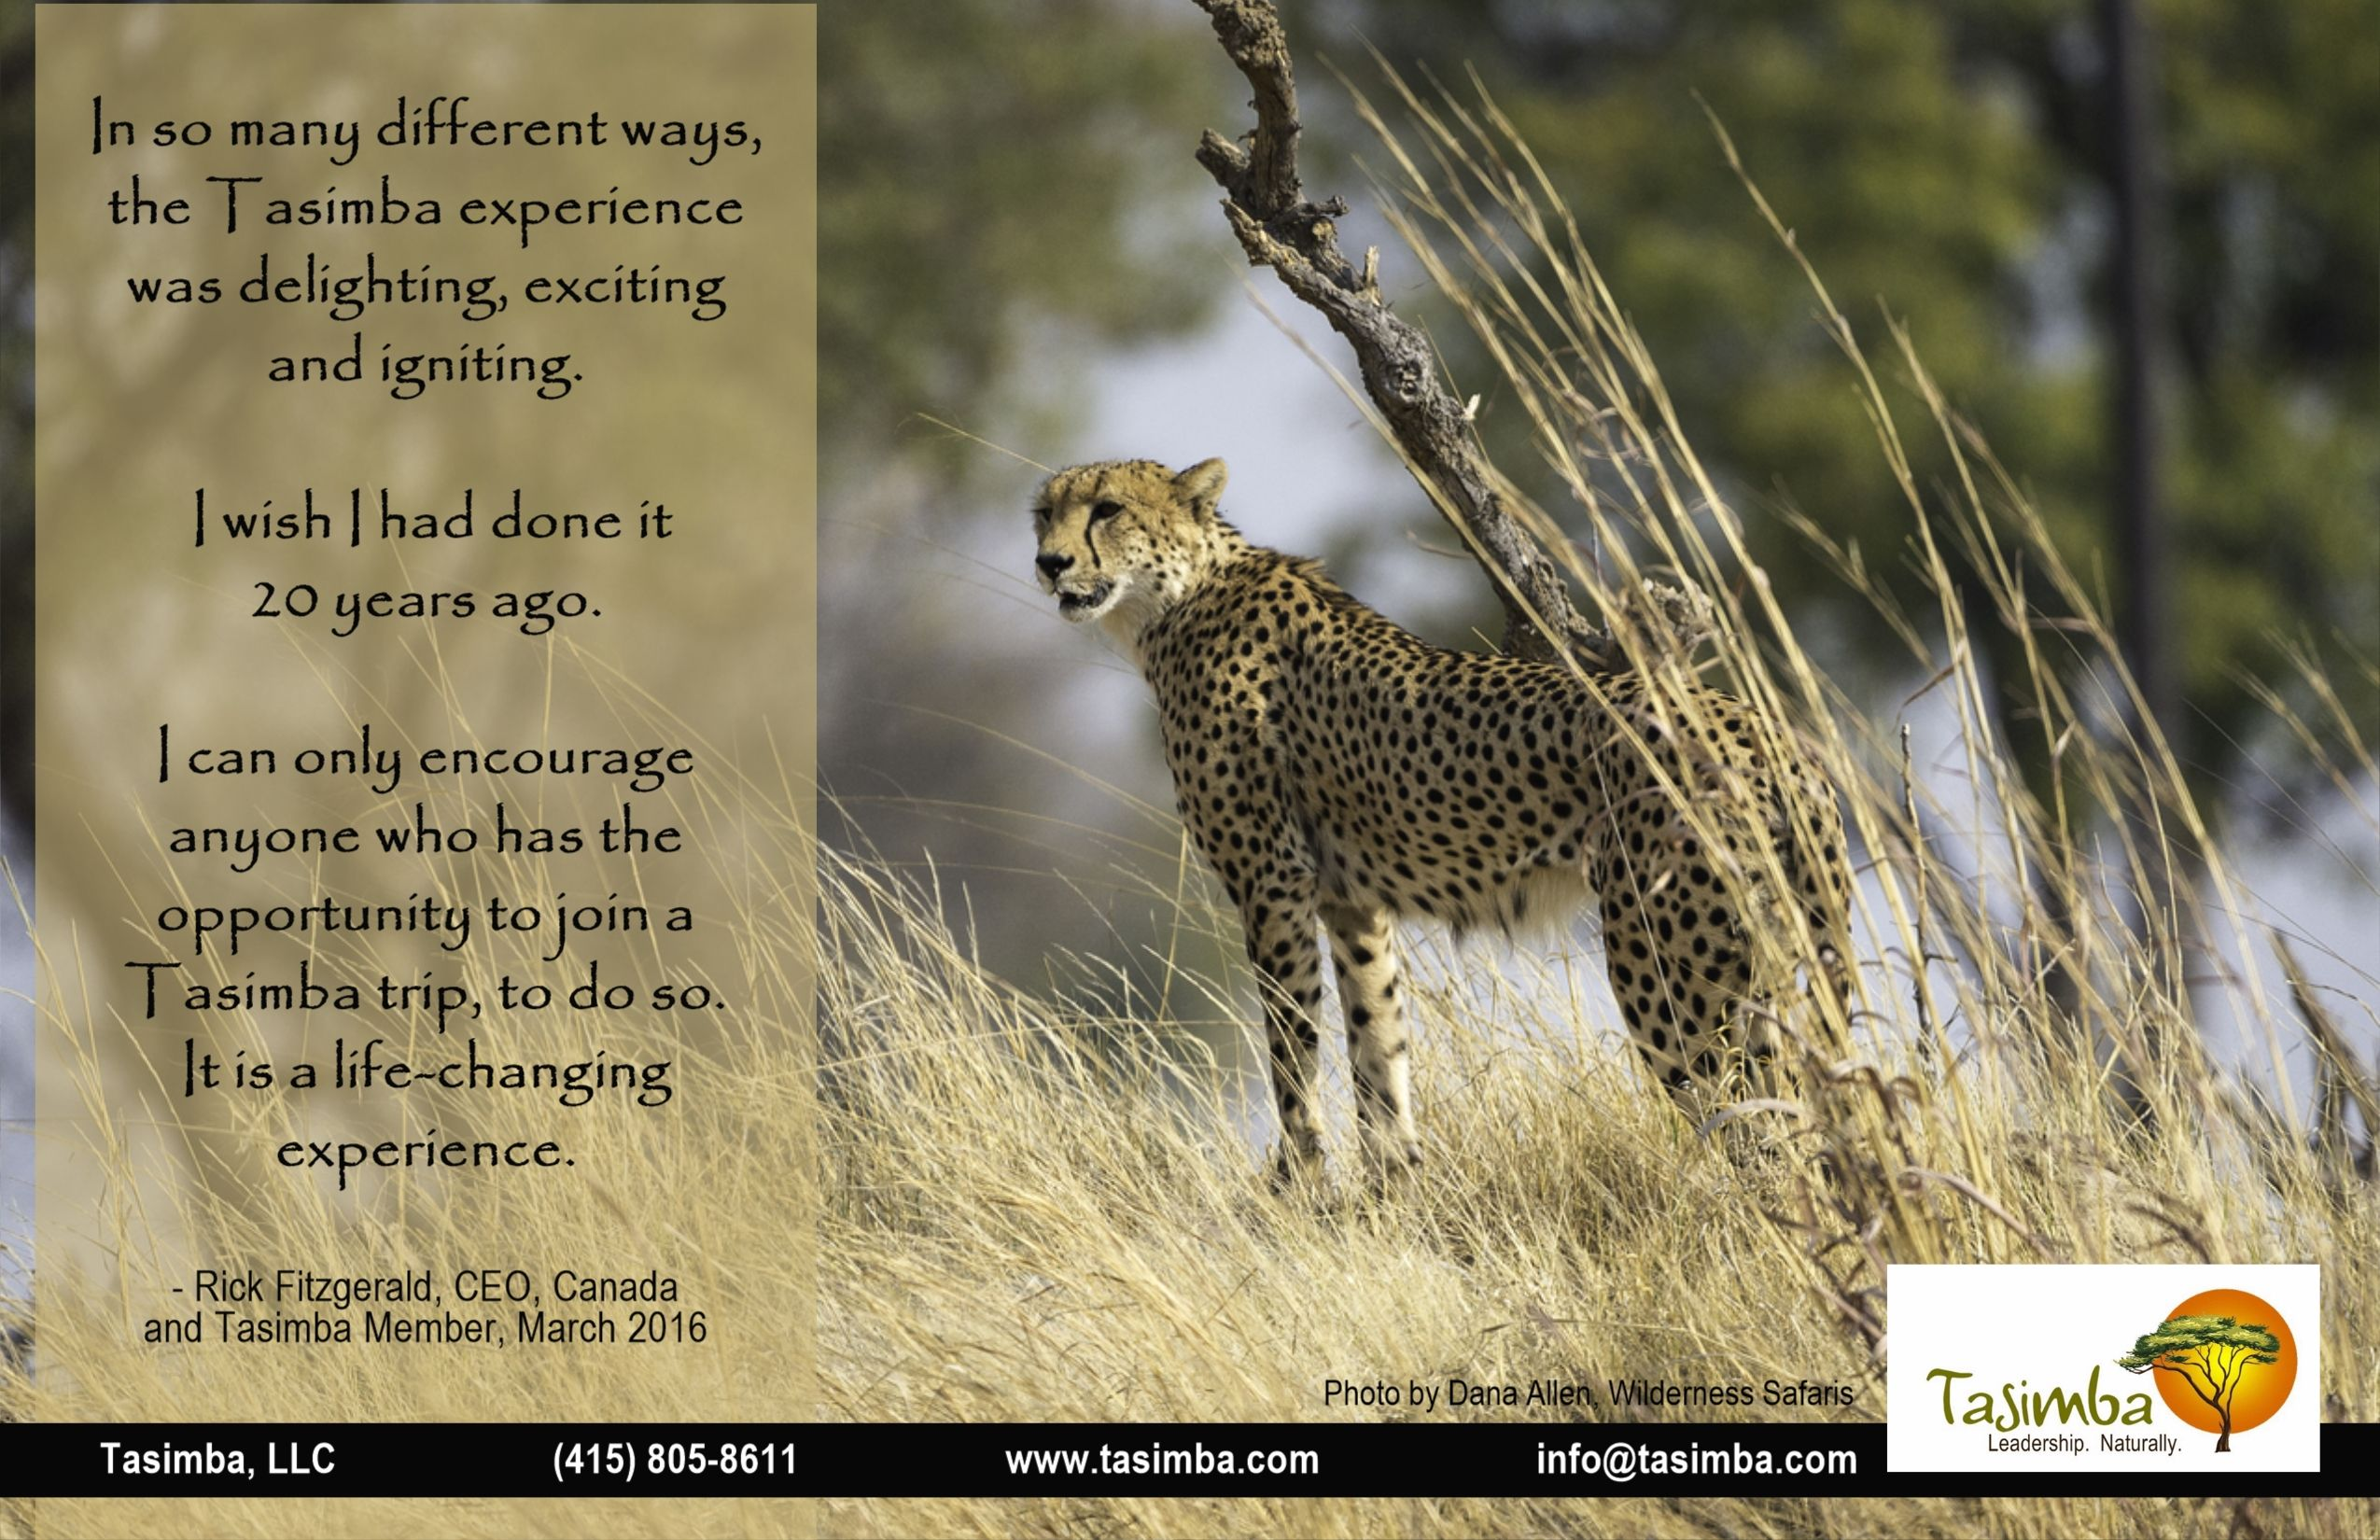 A life-changing experience. Don't wait 20 ears - do it now! Leadership, personal development, inspiration amid an unforgettable safari experience awaits!